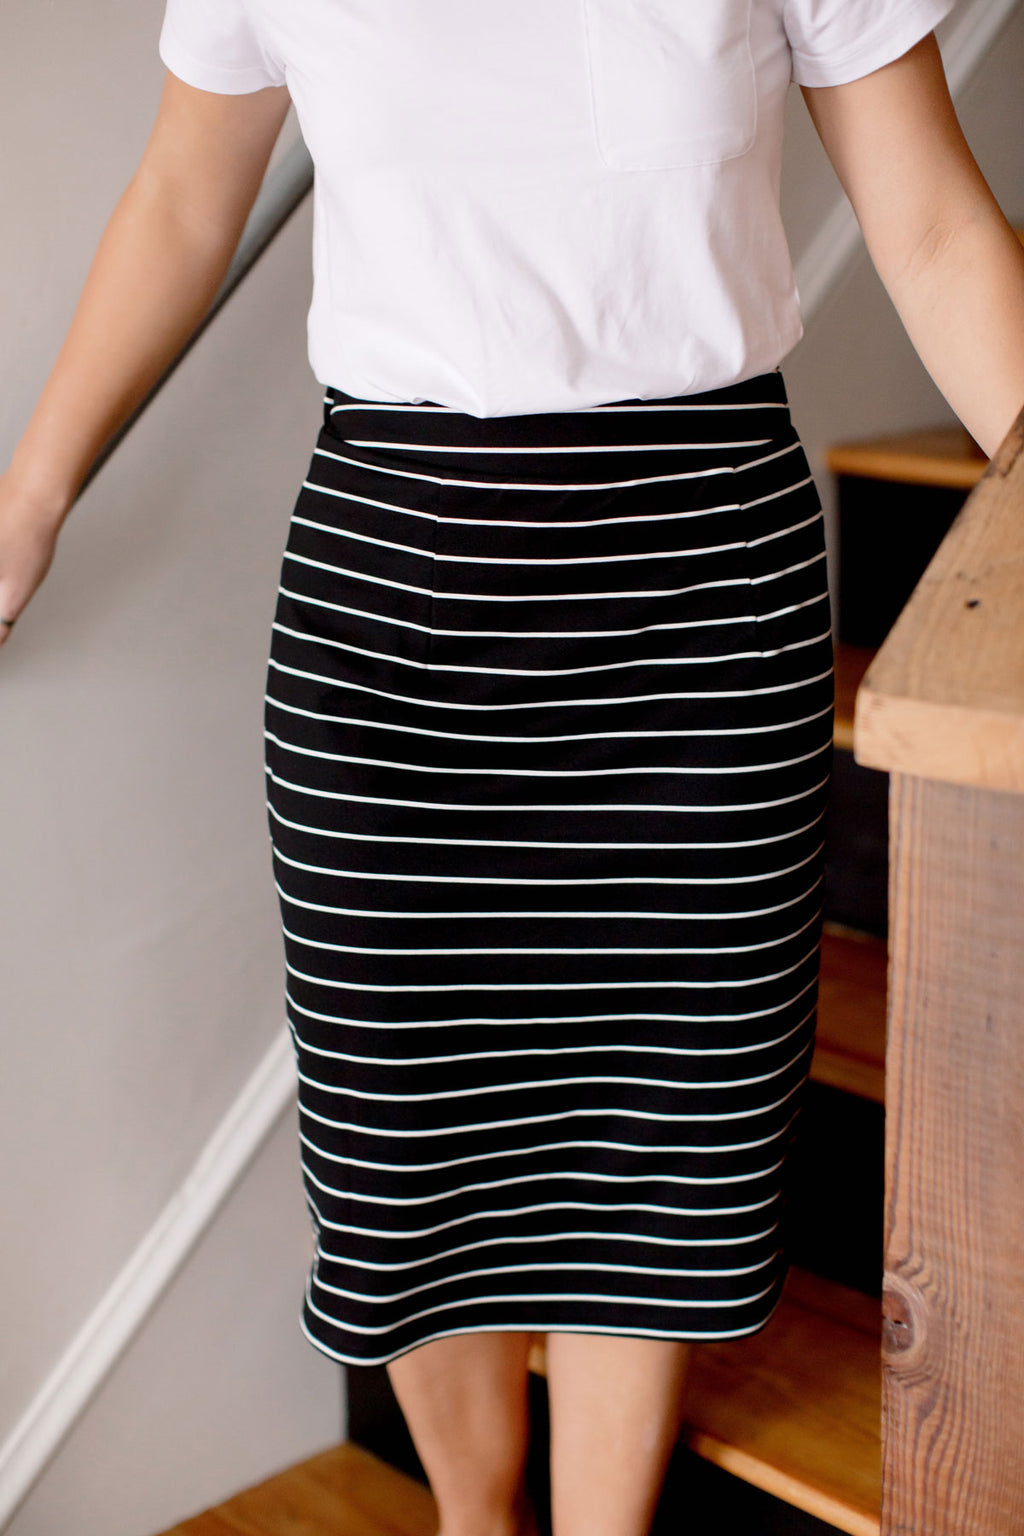 'Anna' Skirt in Black/White Stripes